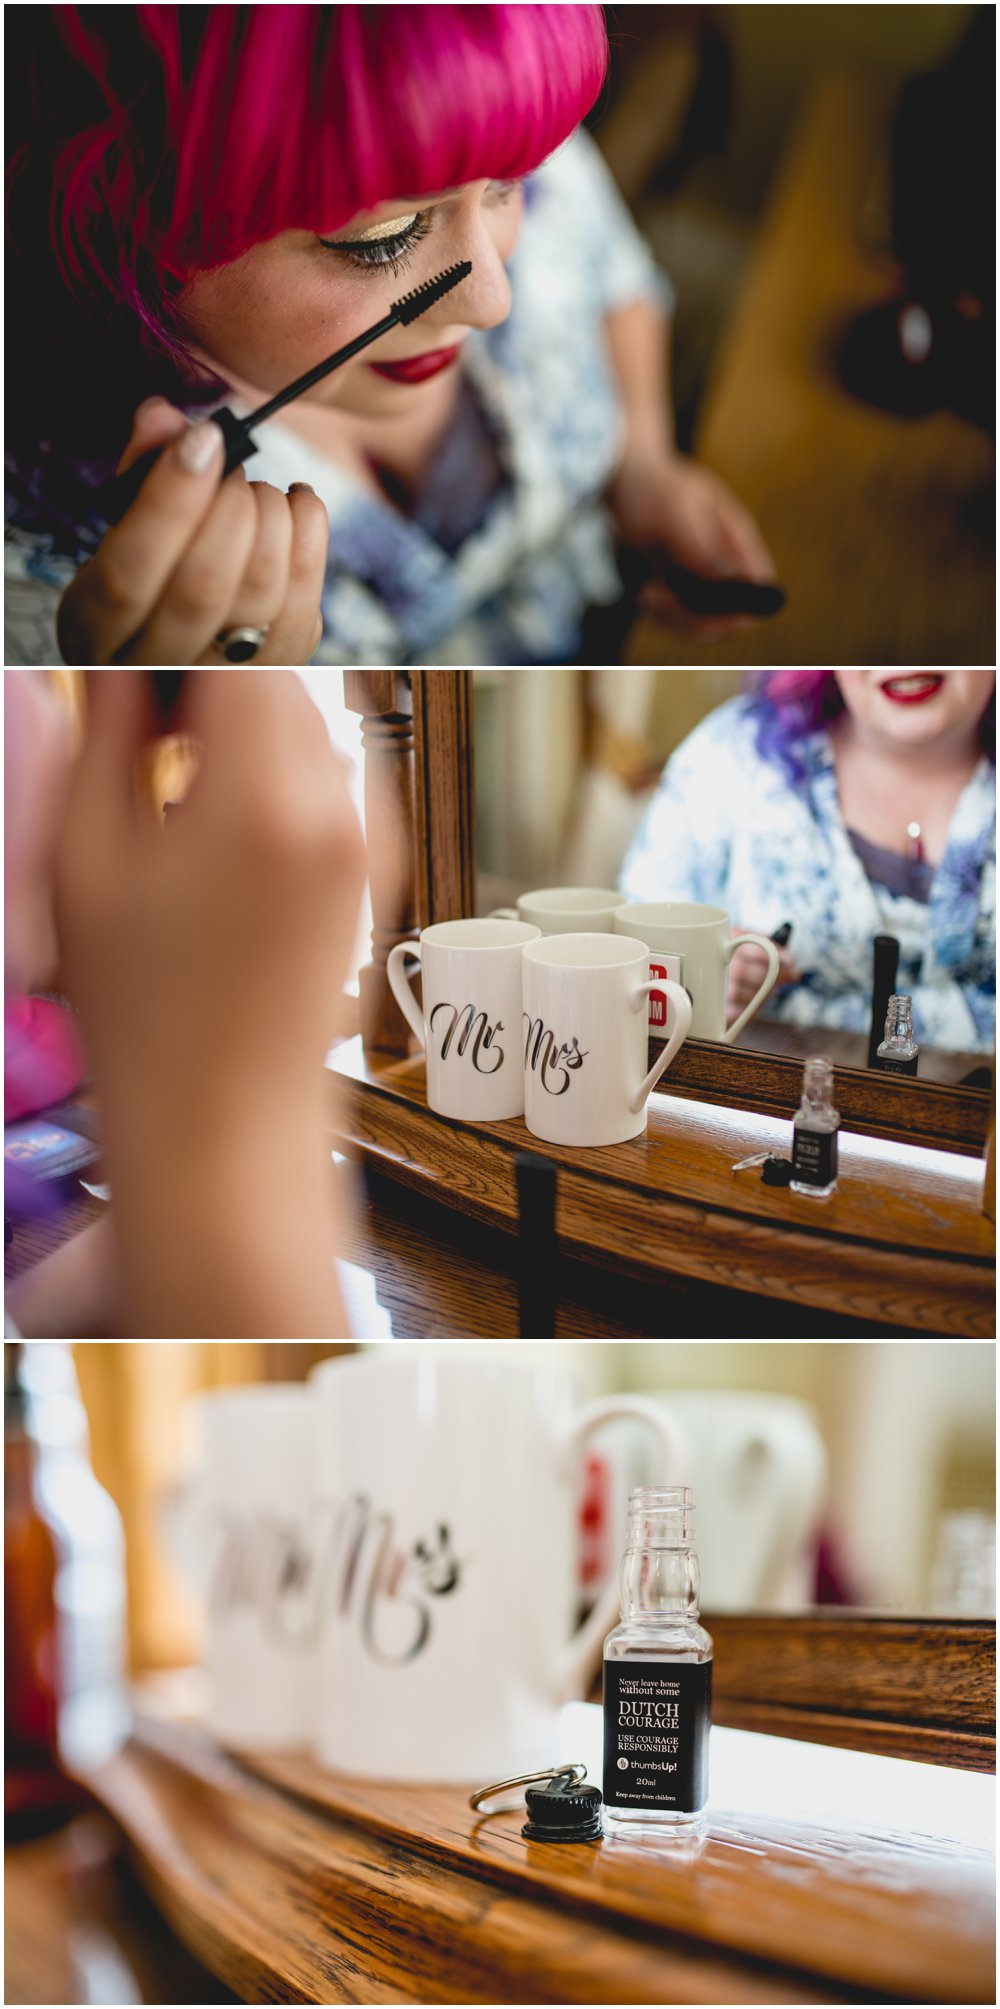 Fay and Michael - Alternative, Carnival themed, pink and maroon themed wedding at Enginuity Museum in Ironbridge, Telford by West Midlands and Birmingham based wedding photographer Lisa Carpenter Photography